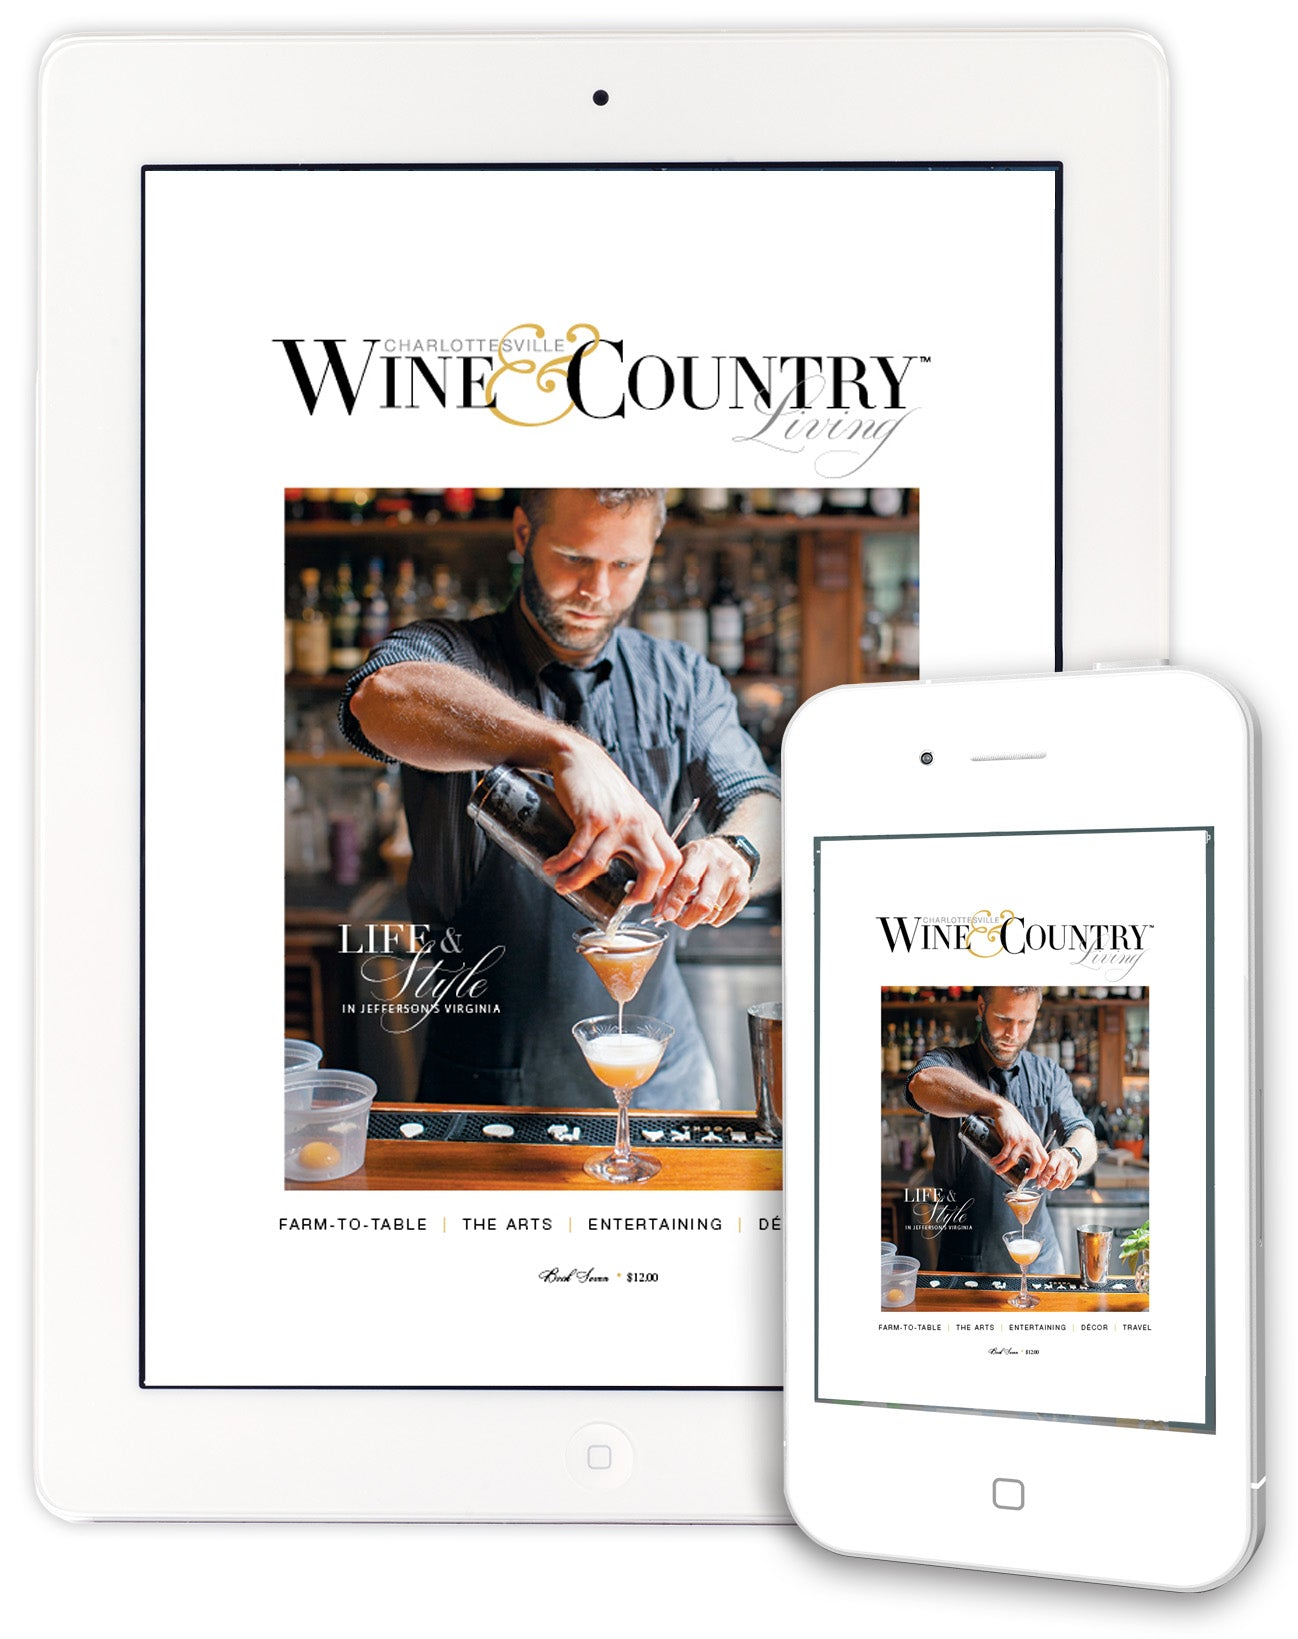 W&C Life Book 7 - Fall 2018 DIGITAL - SINGLE ISSUE